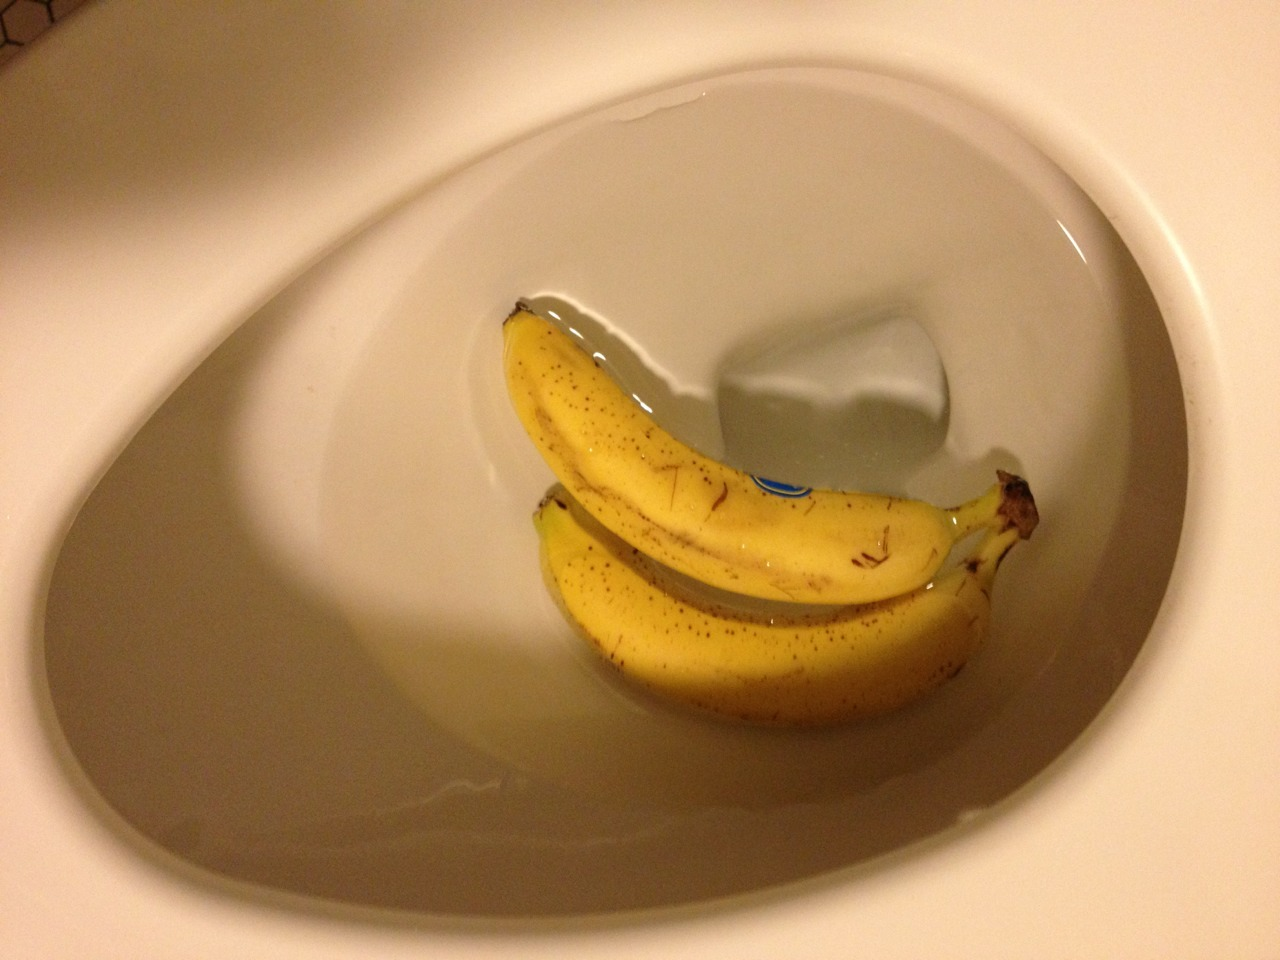 secondseal:  The shit is bananas.